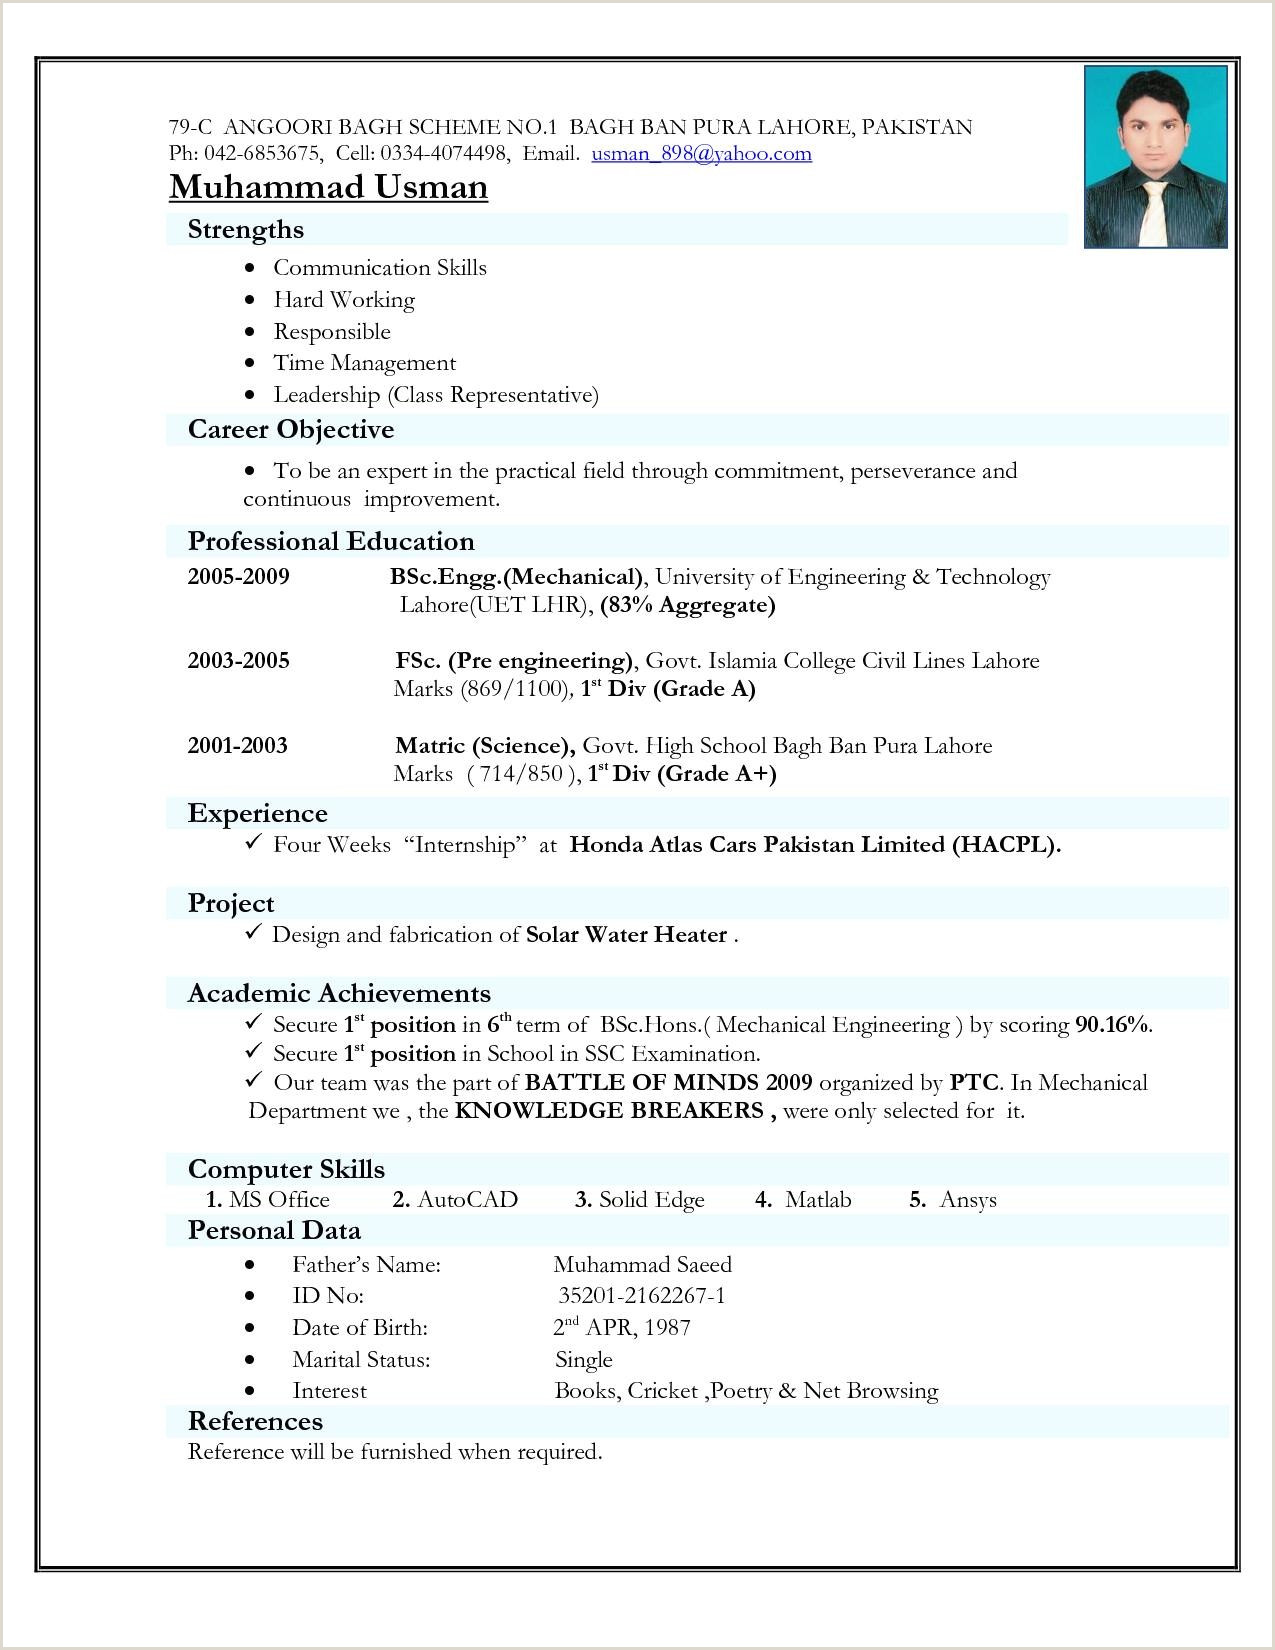 Fresher Resume Mail format Nice Cv format Resume Samples S Sample at Aasaanjobs